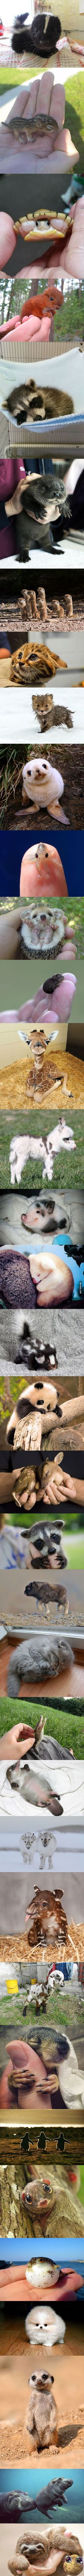 Baby platypus with it& little pink belly! And baby hippos and otters! More Cute baby animals collection! Baby platypus with its little pink belly! And baby hippos and otters! Cute Little Animals, Cute Funny Animals, Tierischer Humor, Baby Hippo, Baby Raccoon, Baby Sloth, Baby Baby, Cute Animal Pictures, Animal Pics